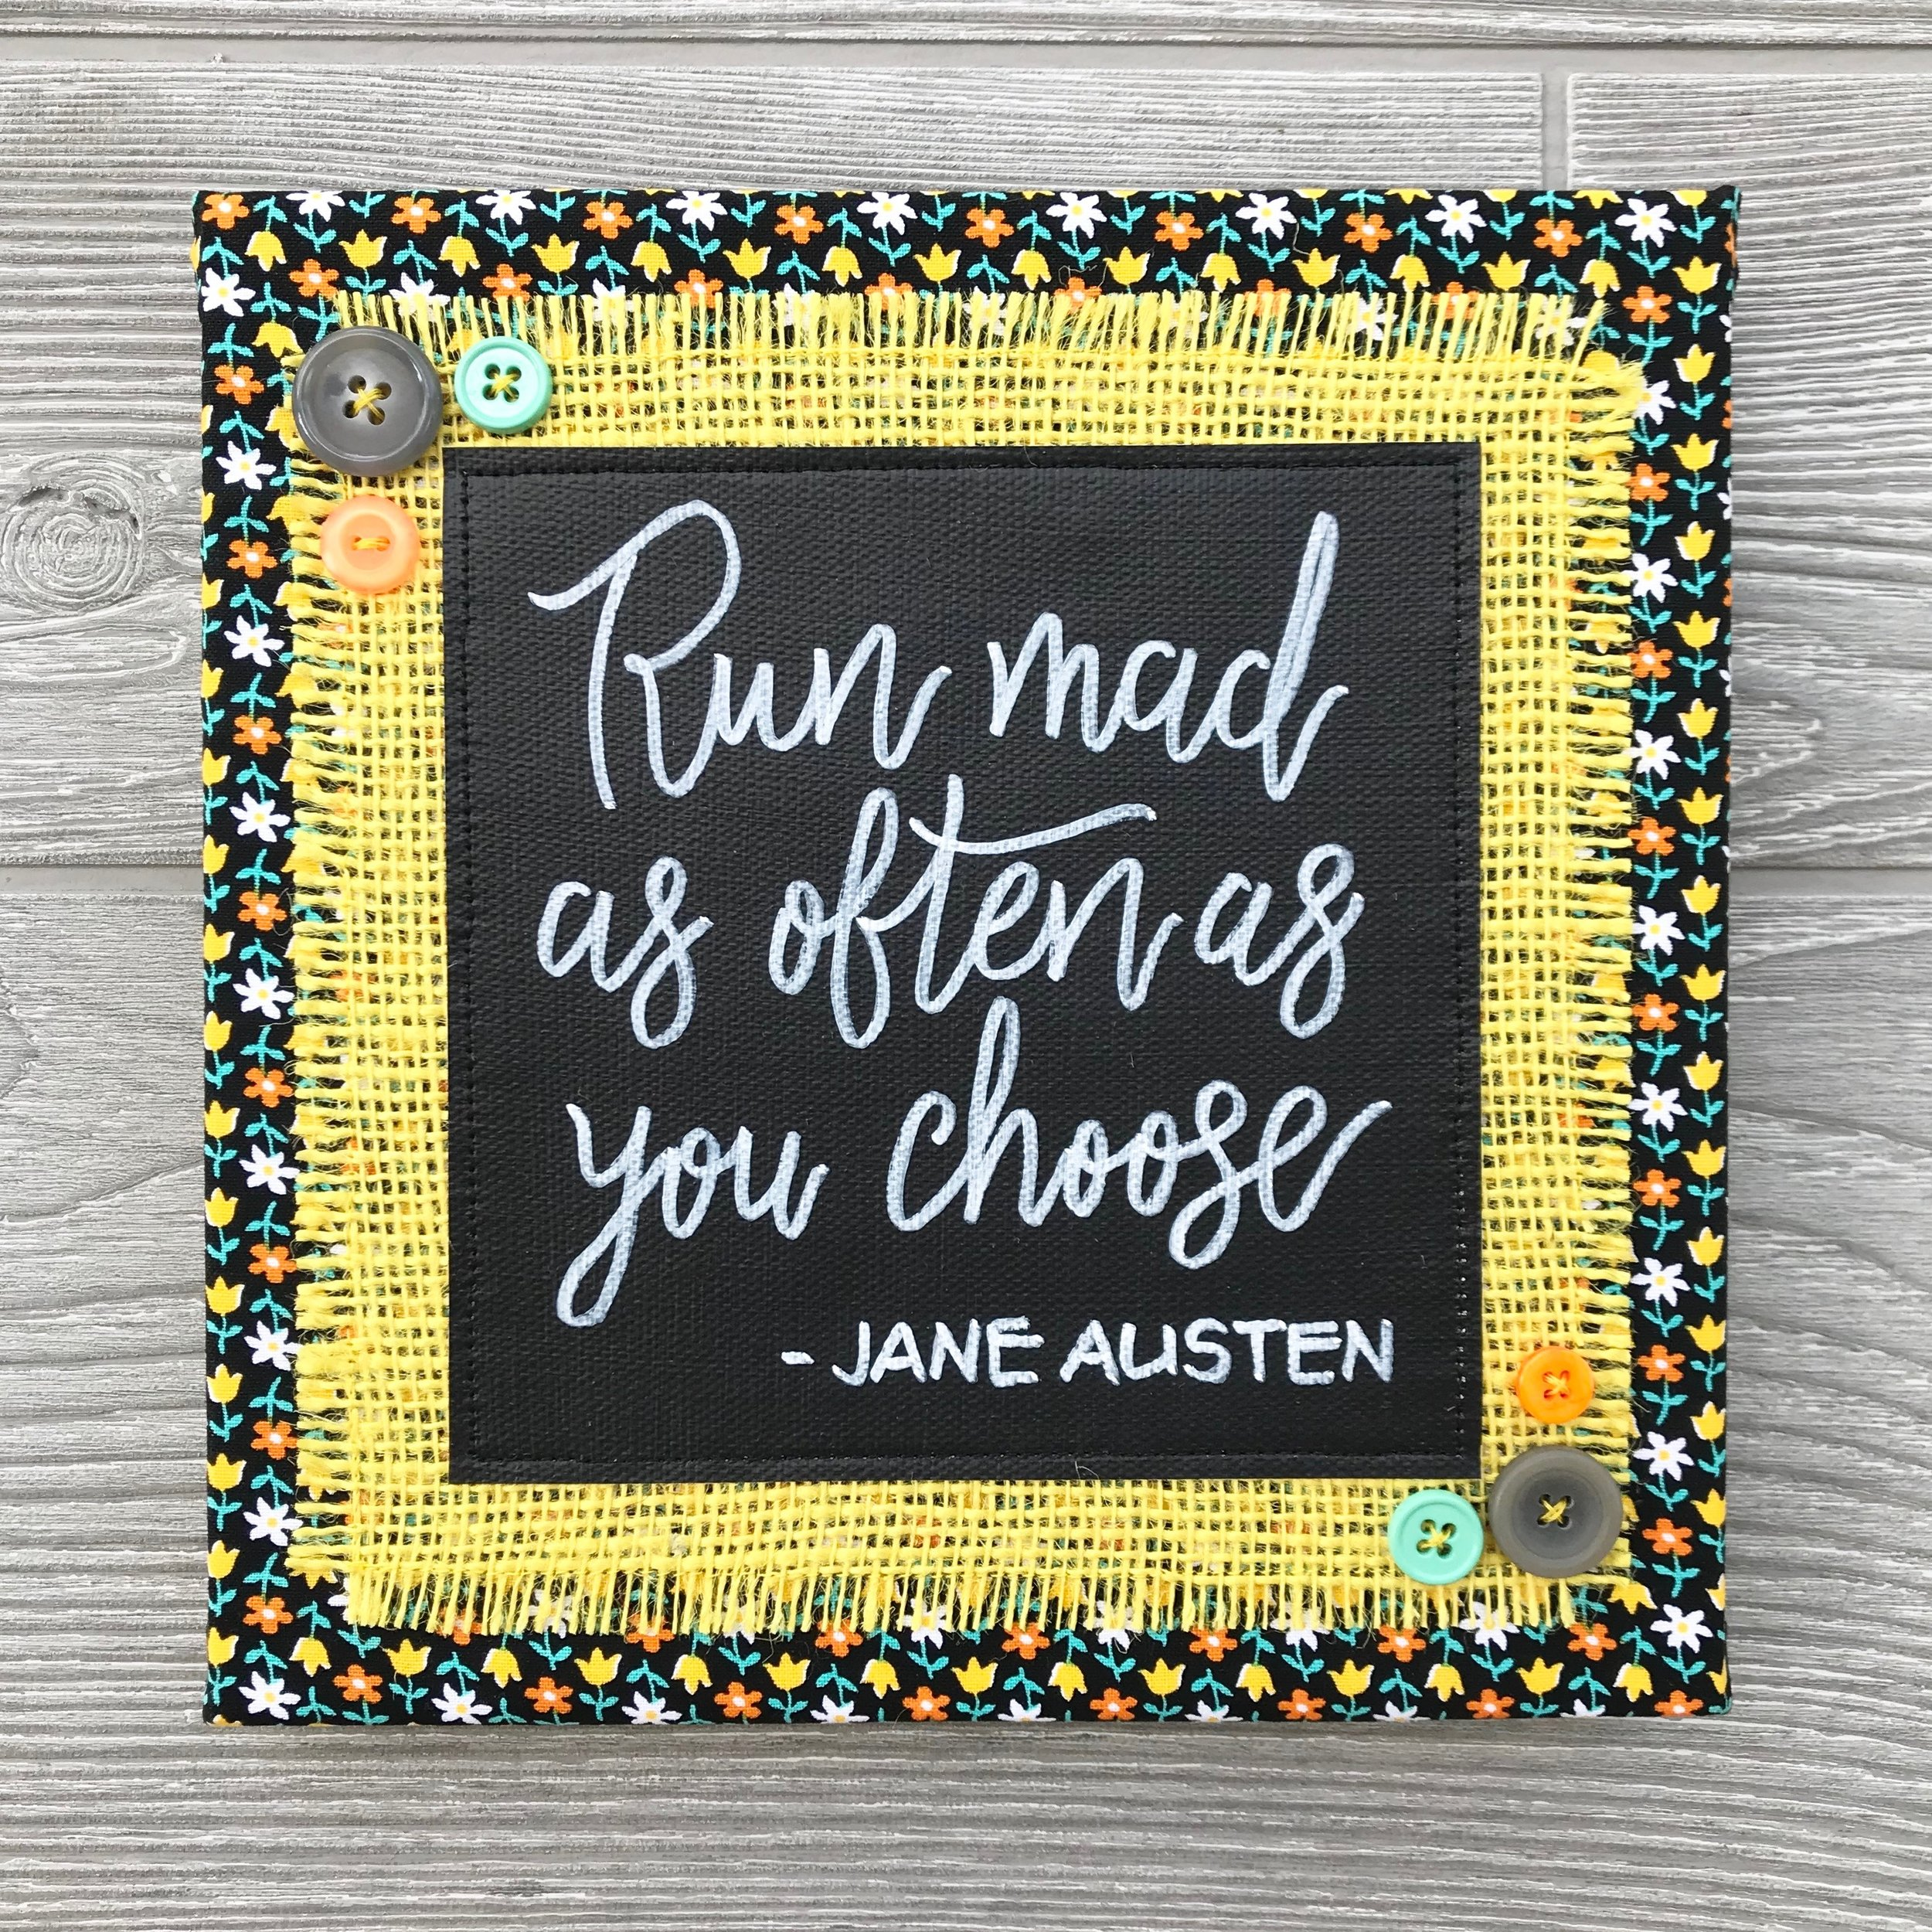 "Run Mad As Often As You Choose - This quote from a very young Jane Austen reminds us not to take ourselves too seriously. Let your hair down. Kick off your shoes. Run a little mad. :)8""x8"" Handmade Literary ArtworkElements: hand-painted and hand-lettered canvas, colorful burlap, patterned fabric, coordinating buttons, wood frame, claw hangerFeatured Author: Jane Austen (Love and Freindship [sic], 1790)Price: $25 (includes US-based shipping)"